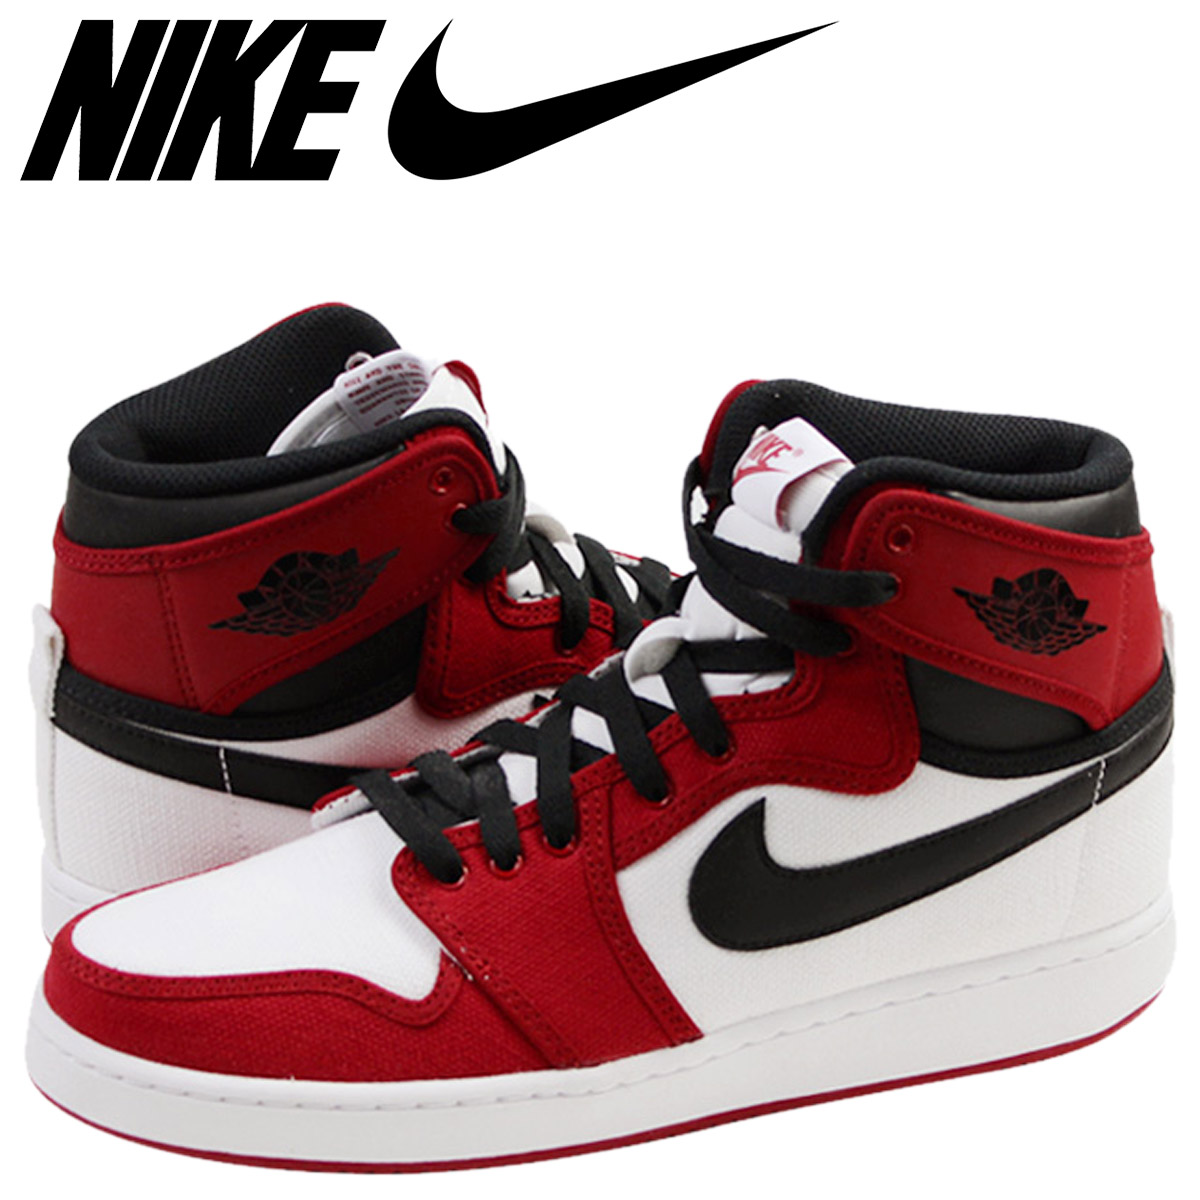 f9b9dc85f5ca81 Nike NIKE AIR JORDAN 1 RETRO KO HIGH CHICAGO 638471-101 Air Jordan 1 retro  ...